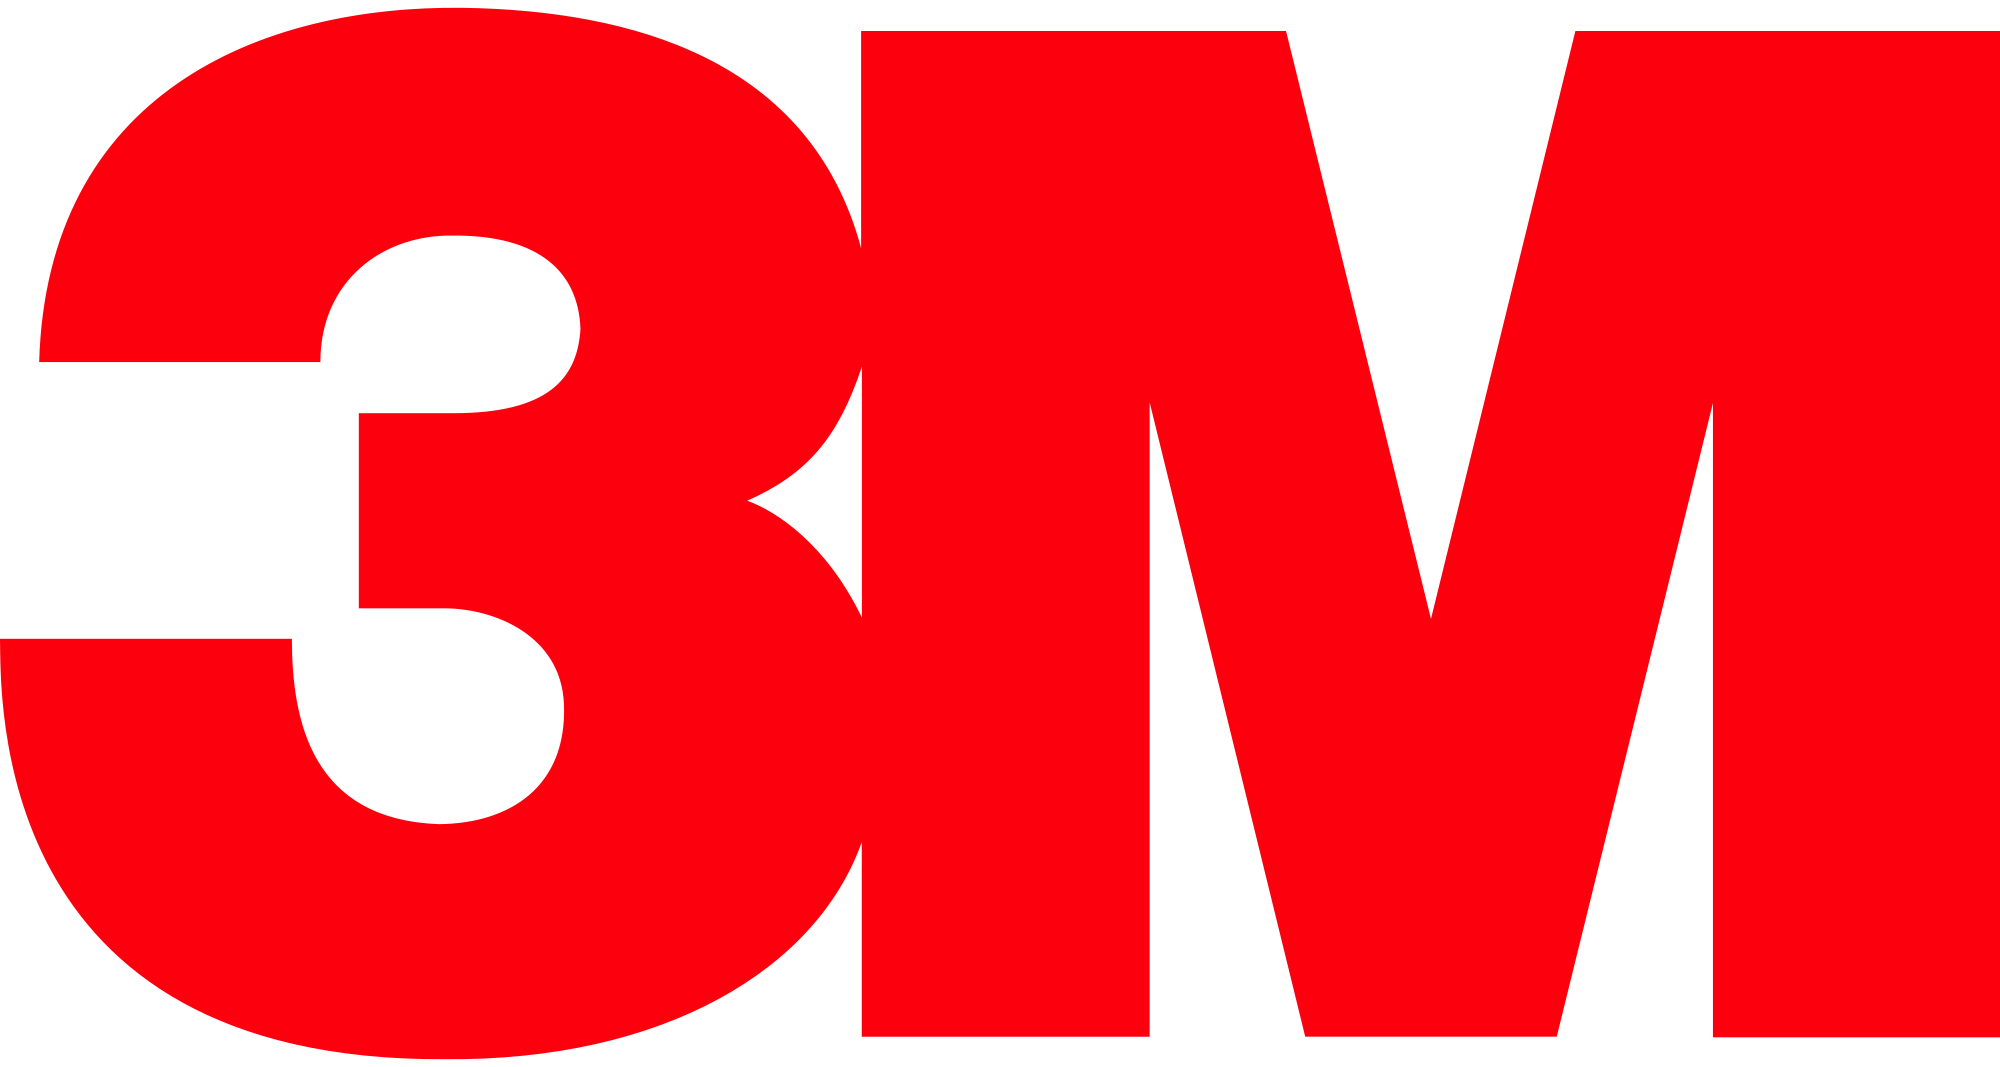 3m customer image